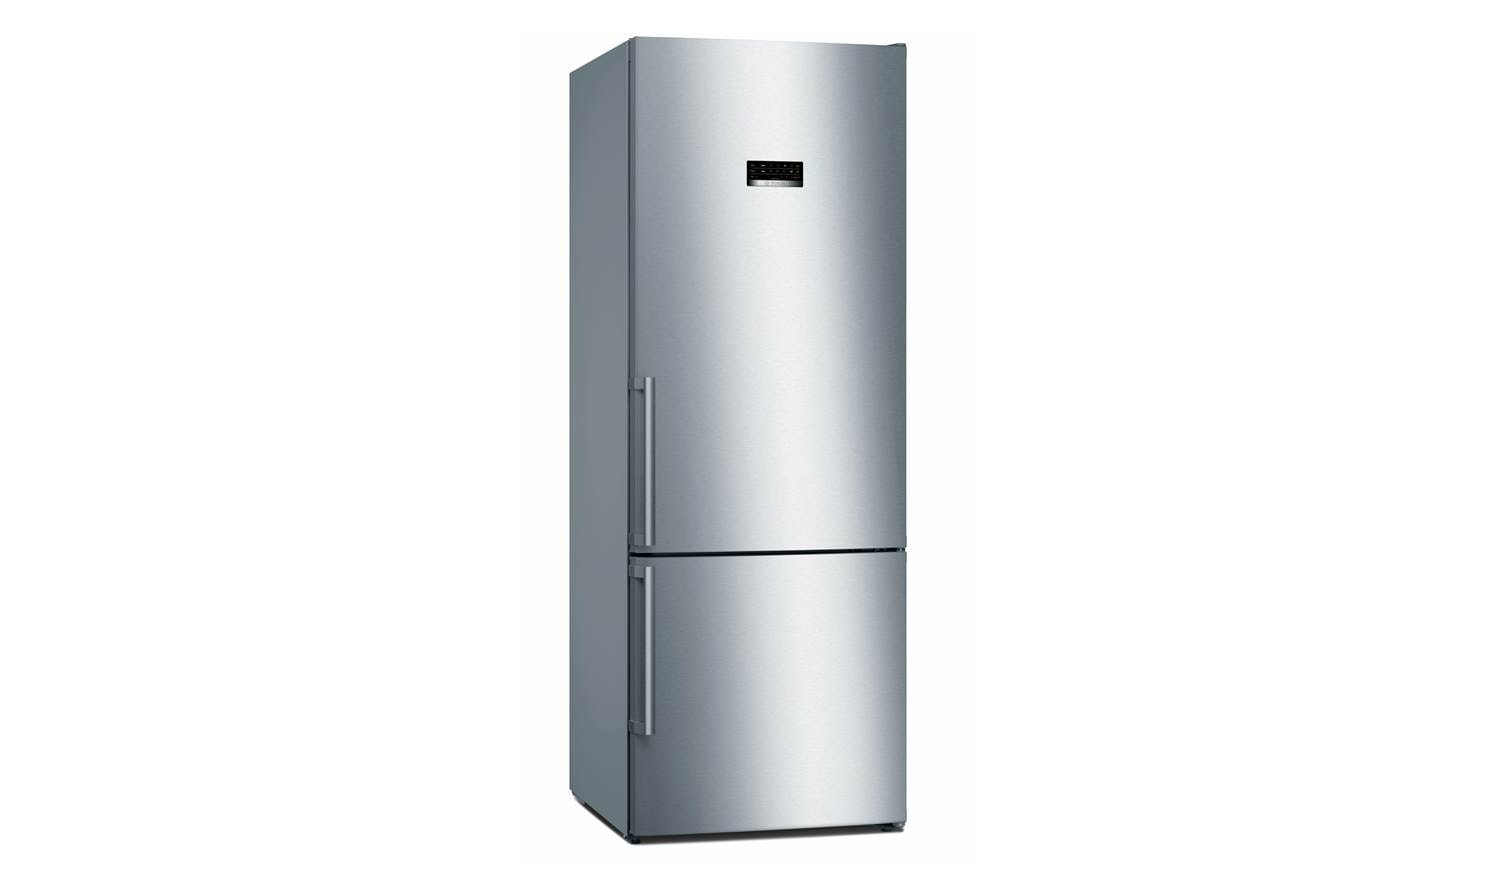 Bosch Kgn56xi40 559l Bottom Freezer Refrigerator Harvey